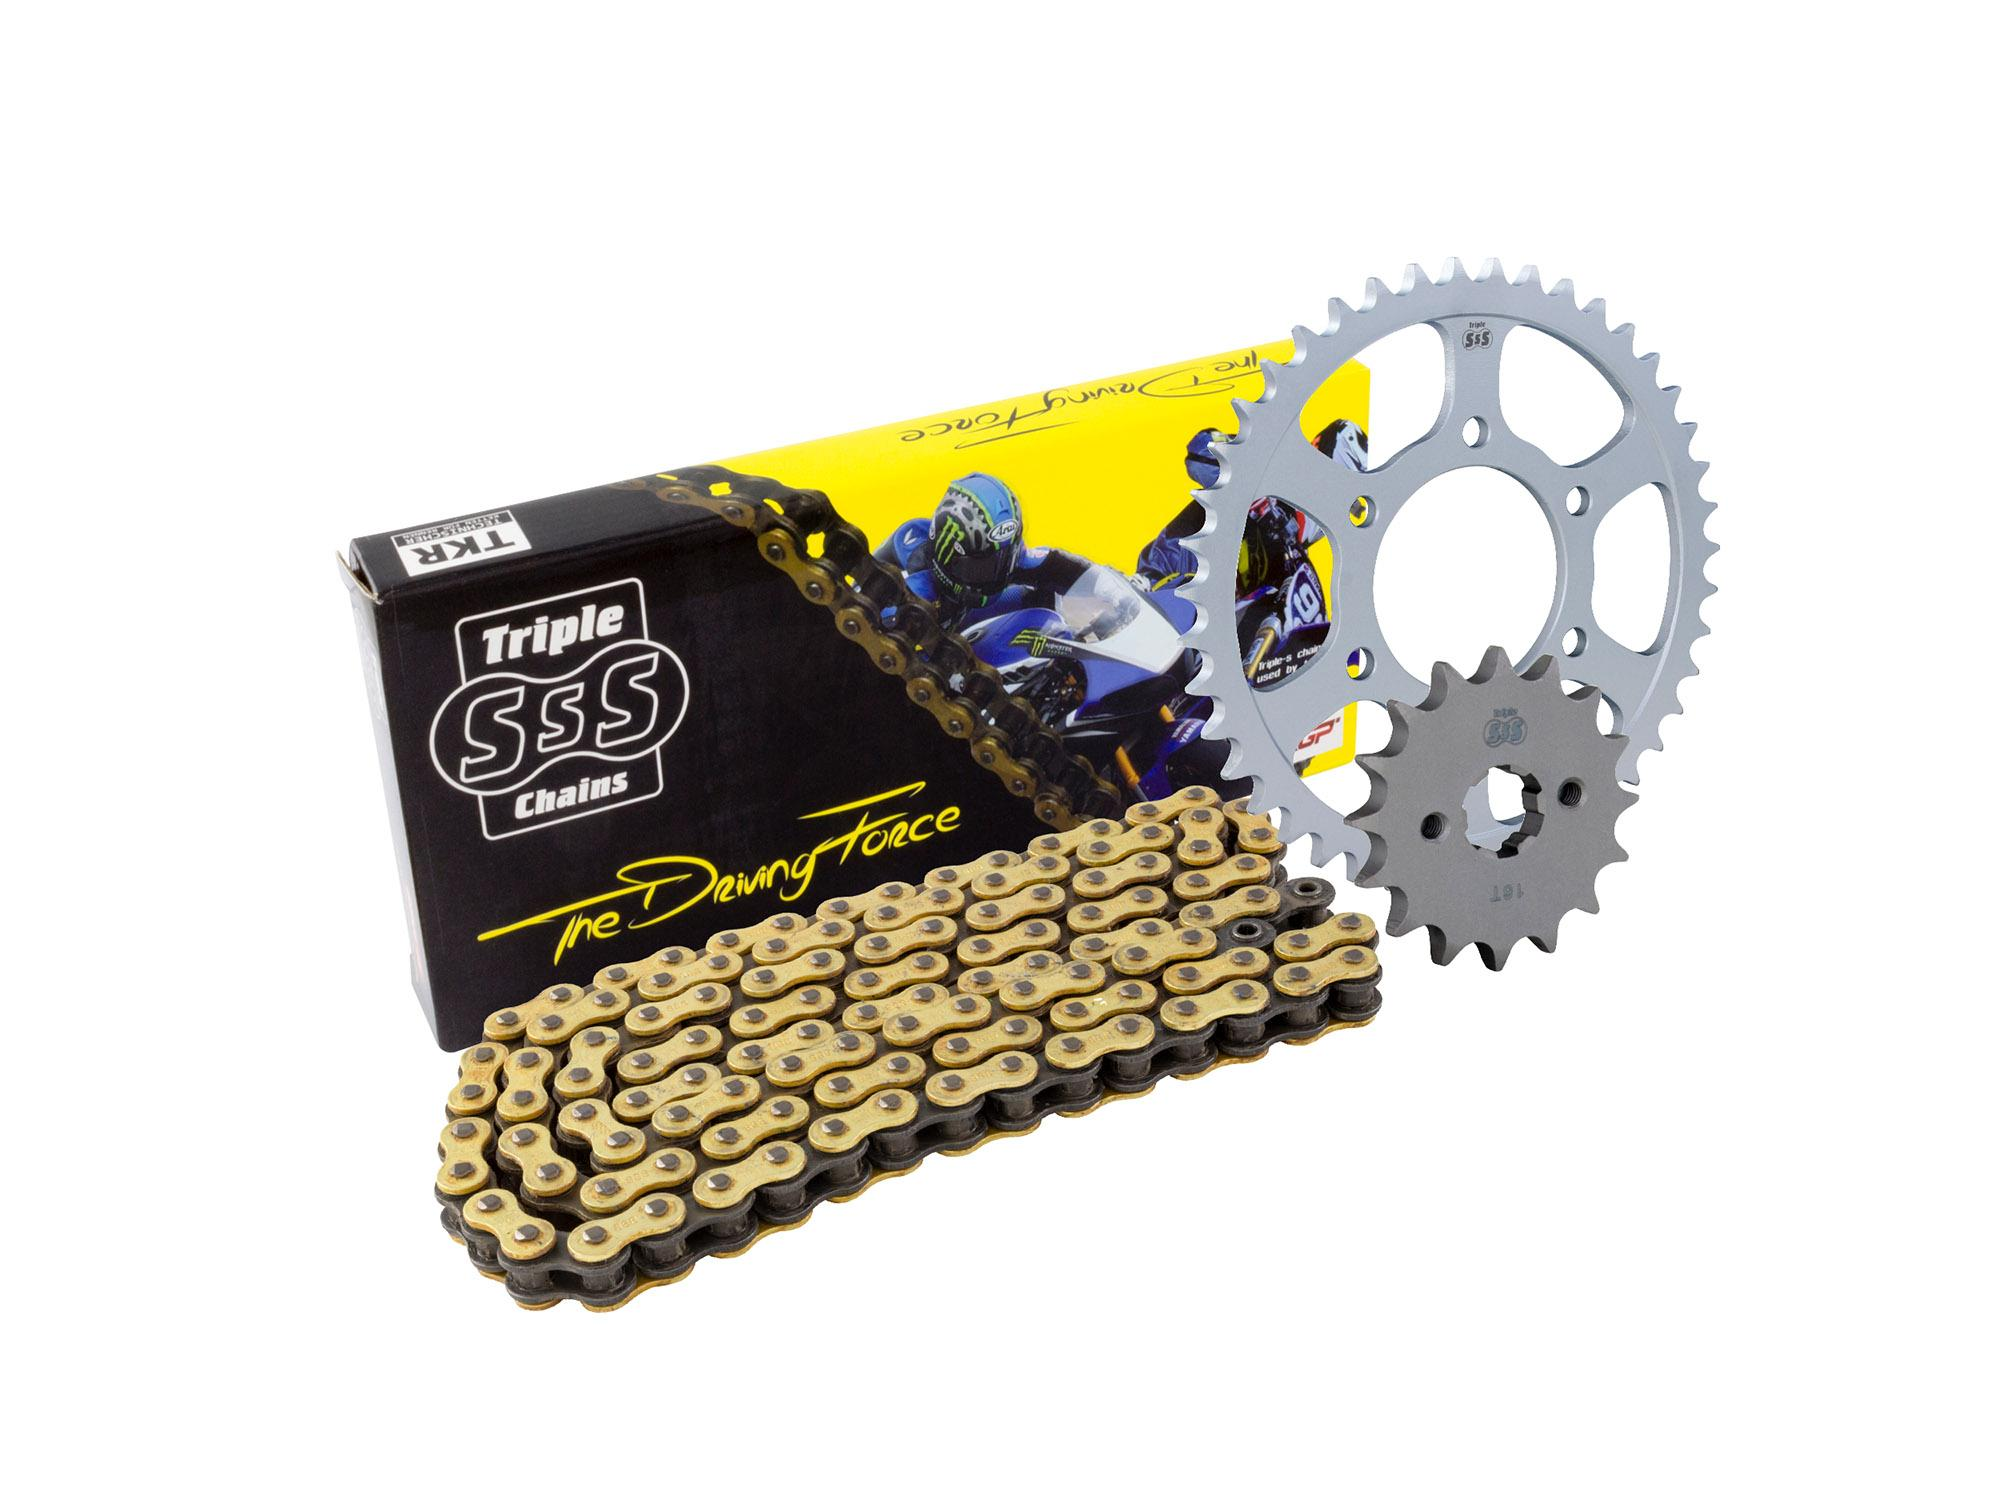 Yamaha FZR1000R Exup 89-95 Chain & Sprocket Kit: 17T Front, 47T Rear, HD O-Ring Gold Chain 530H 110 Link